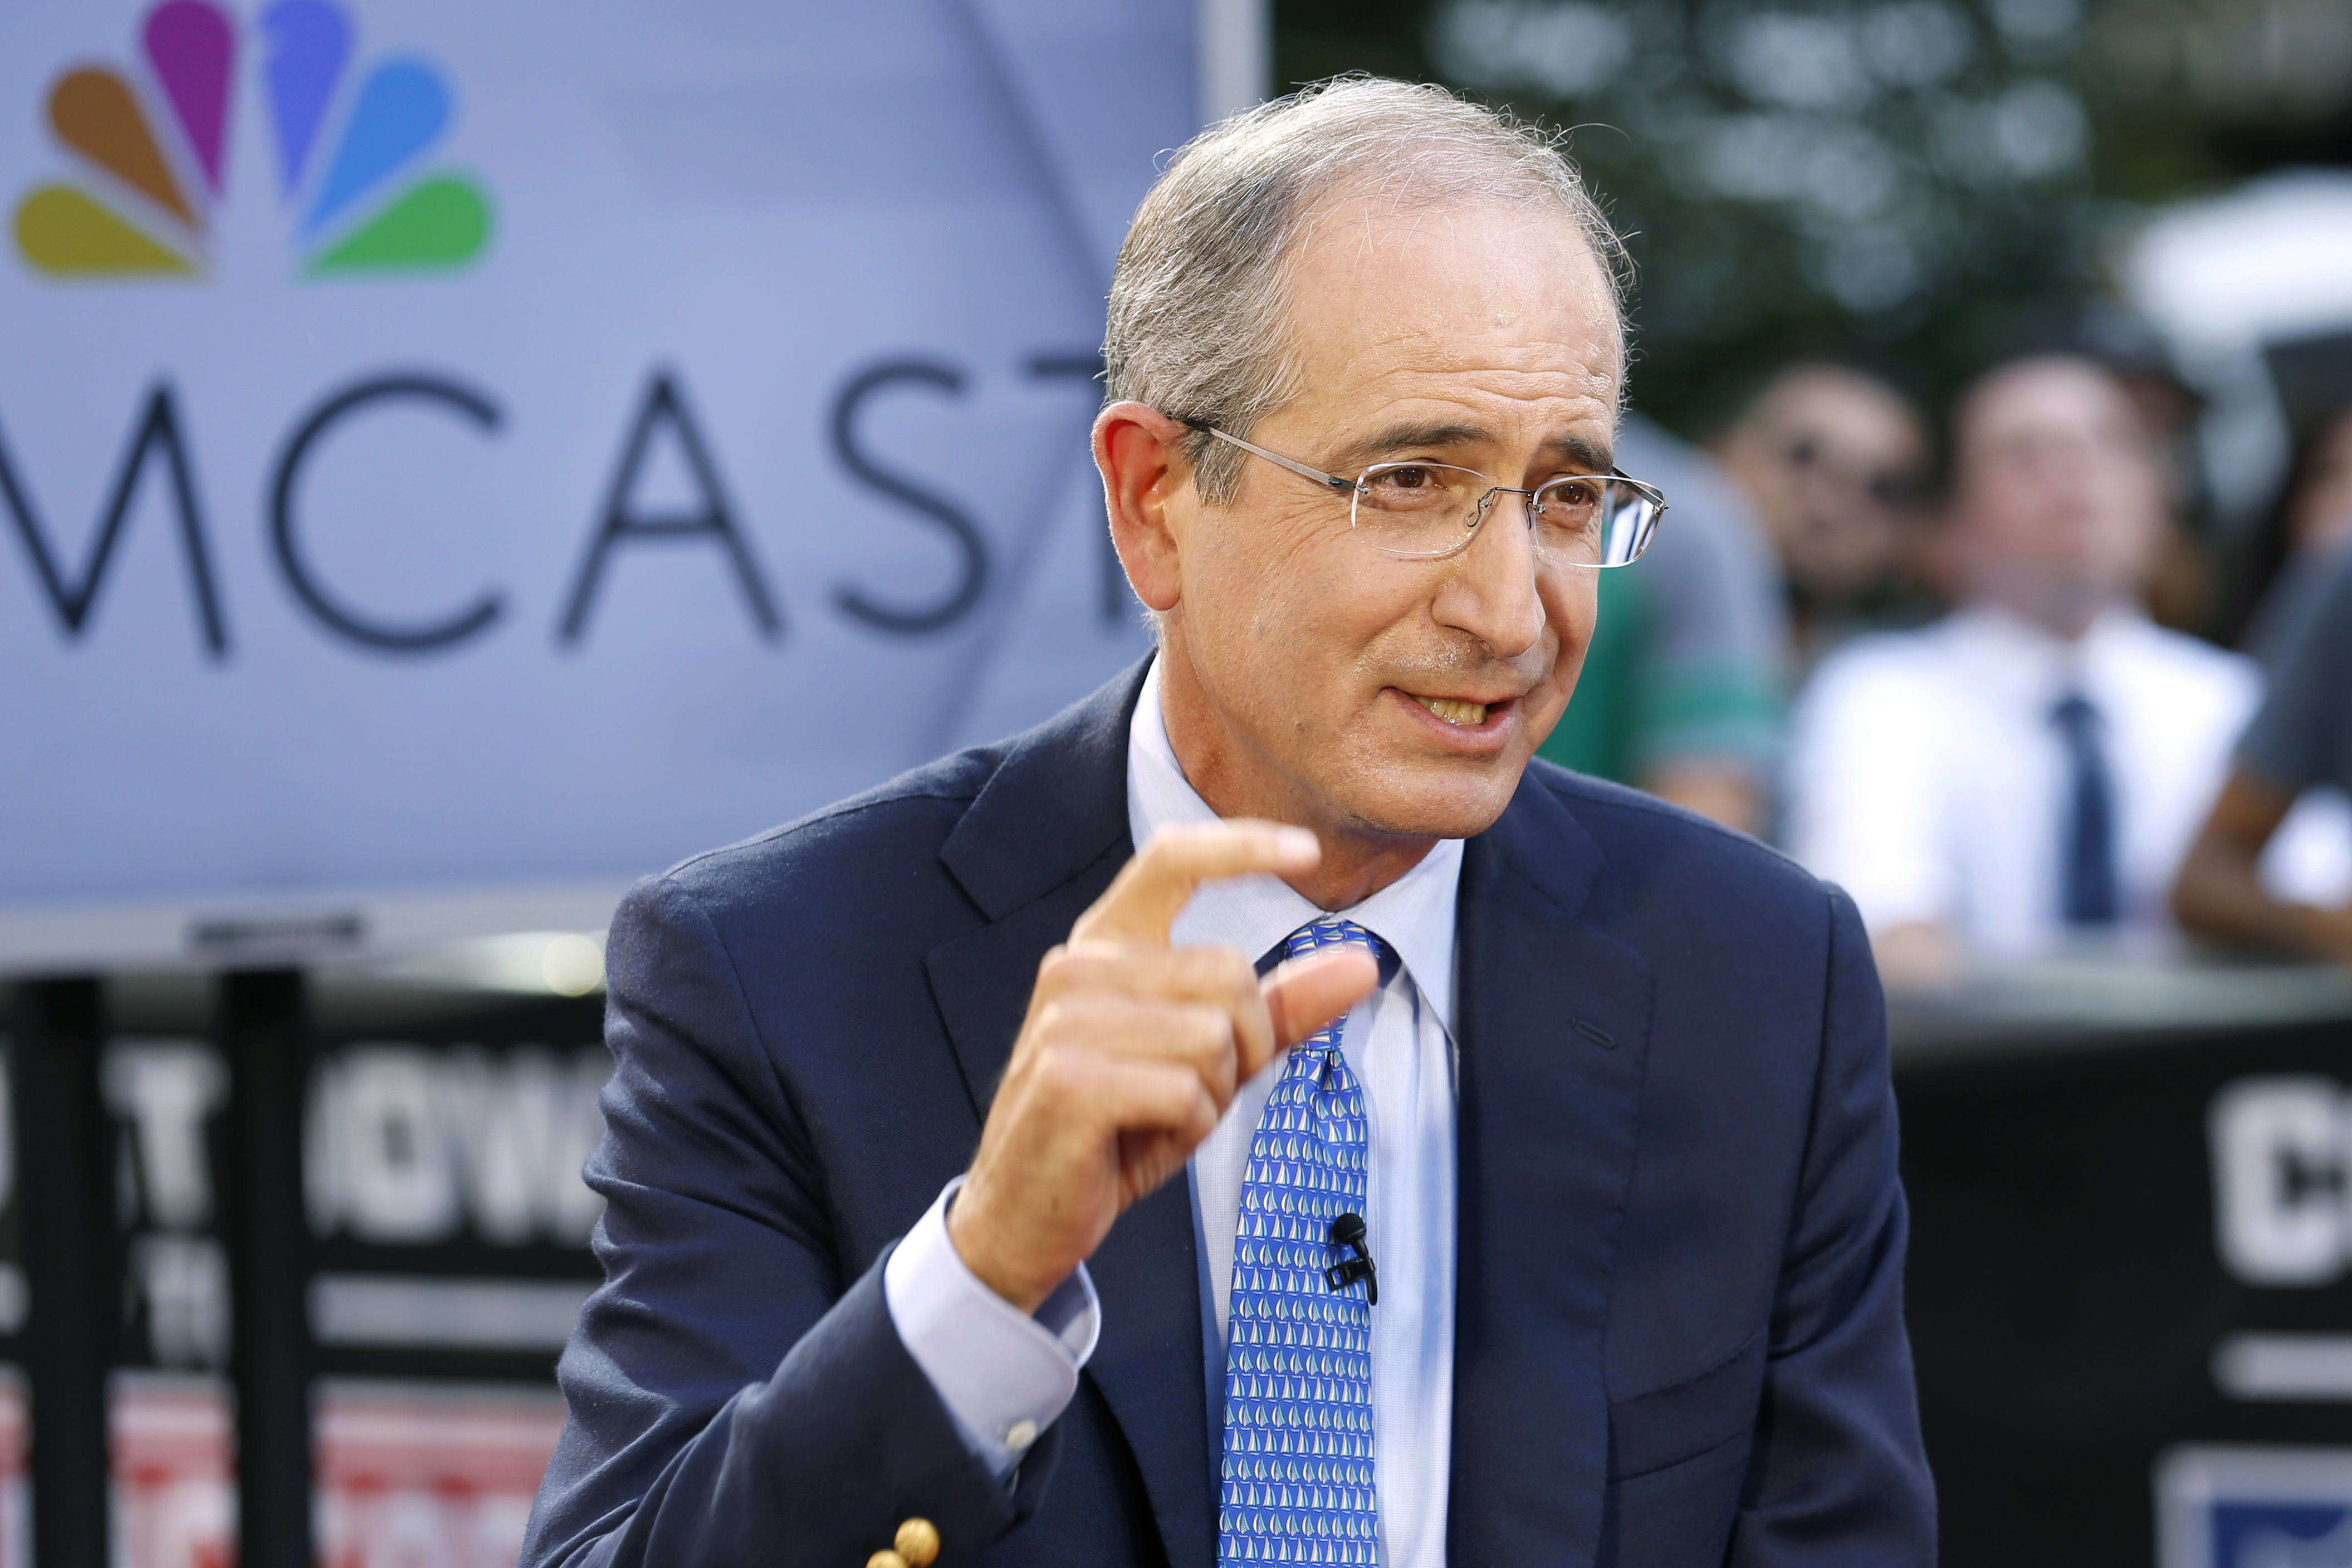 Access here alternative investment news about Comcast To Narrow Focus Of Comcast Ventures, Leading To Partner Defections